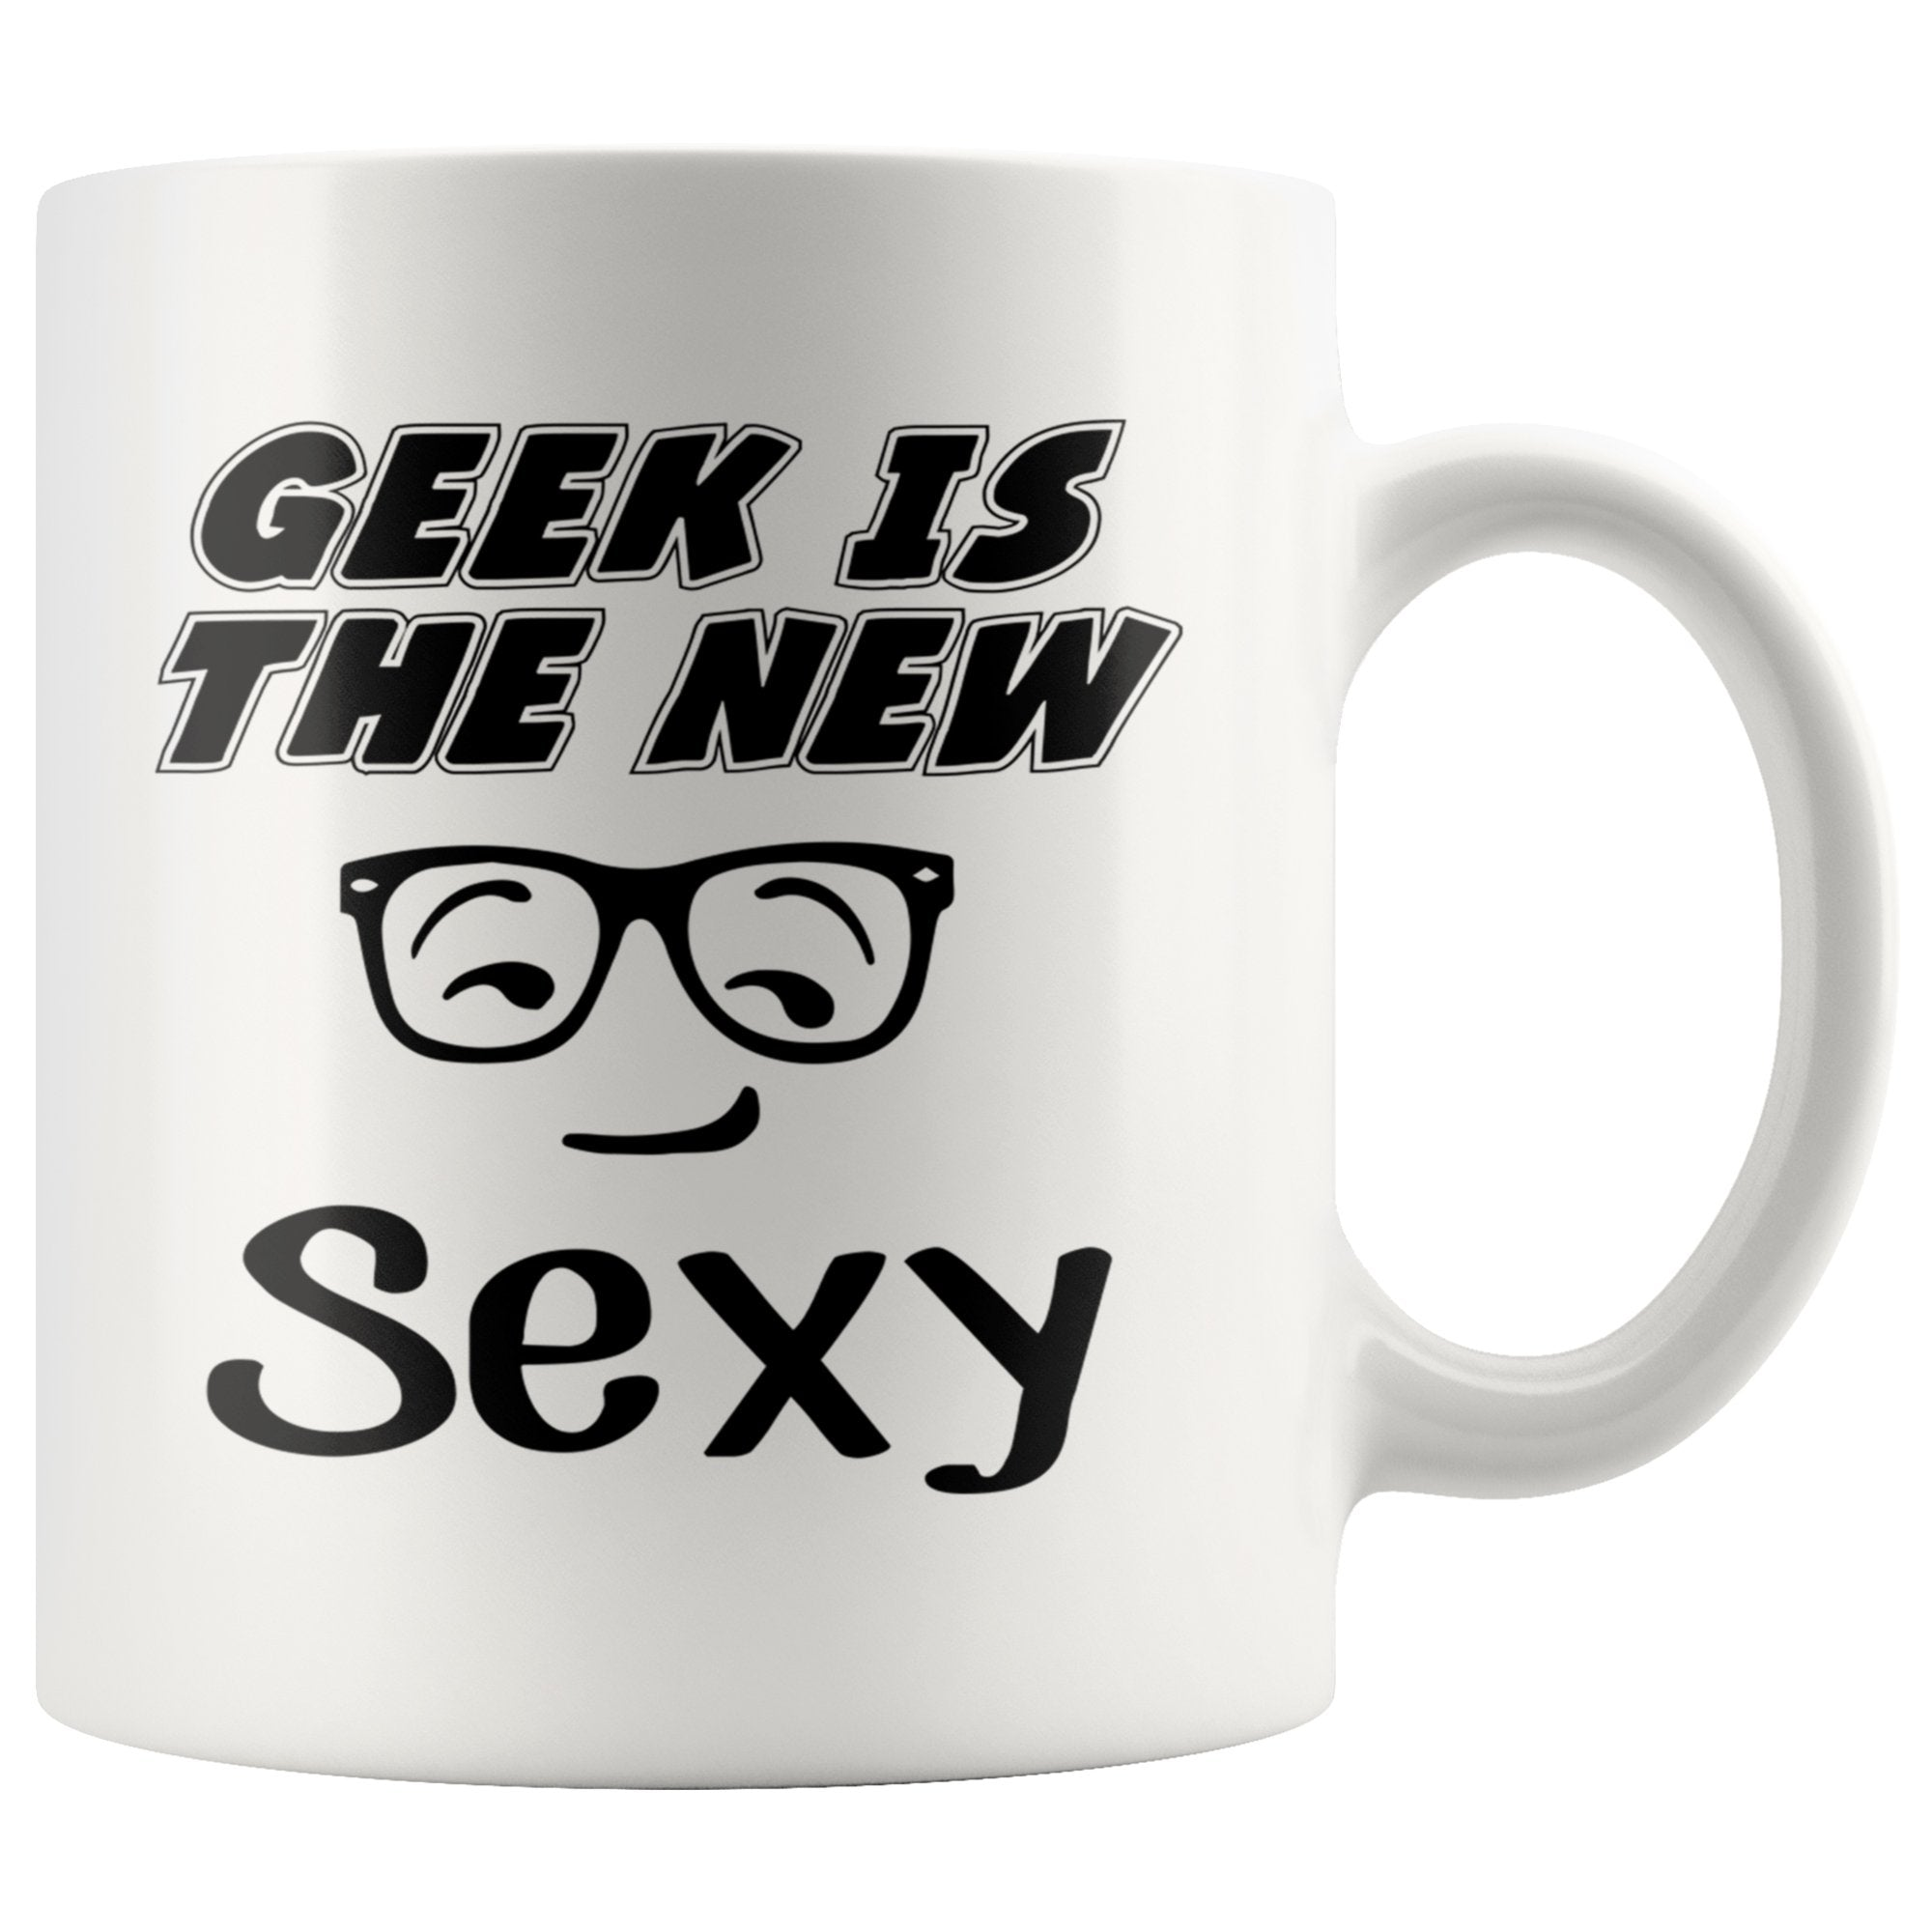 Geek Is The New Sexy Funny White Coffee Mug